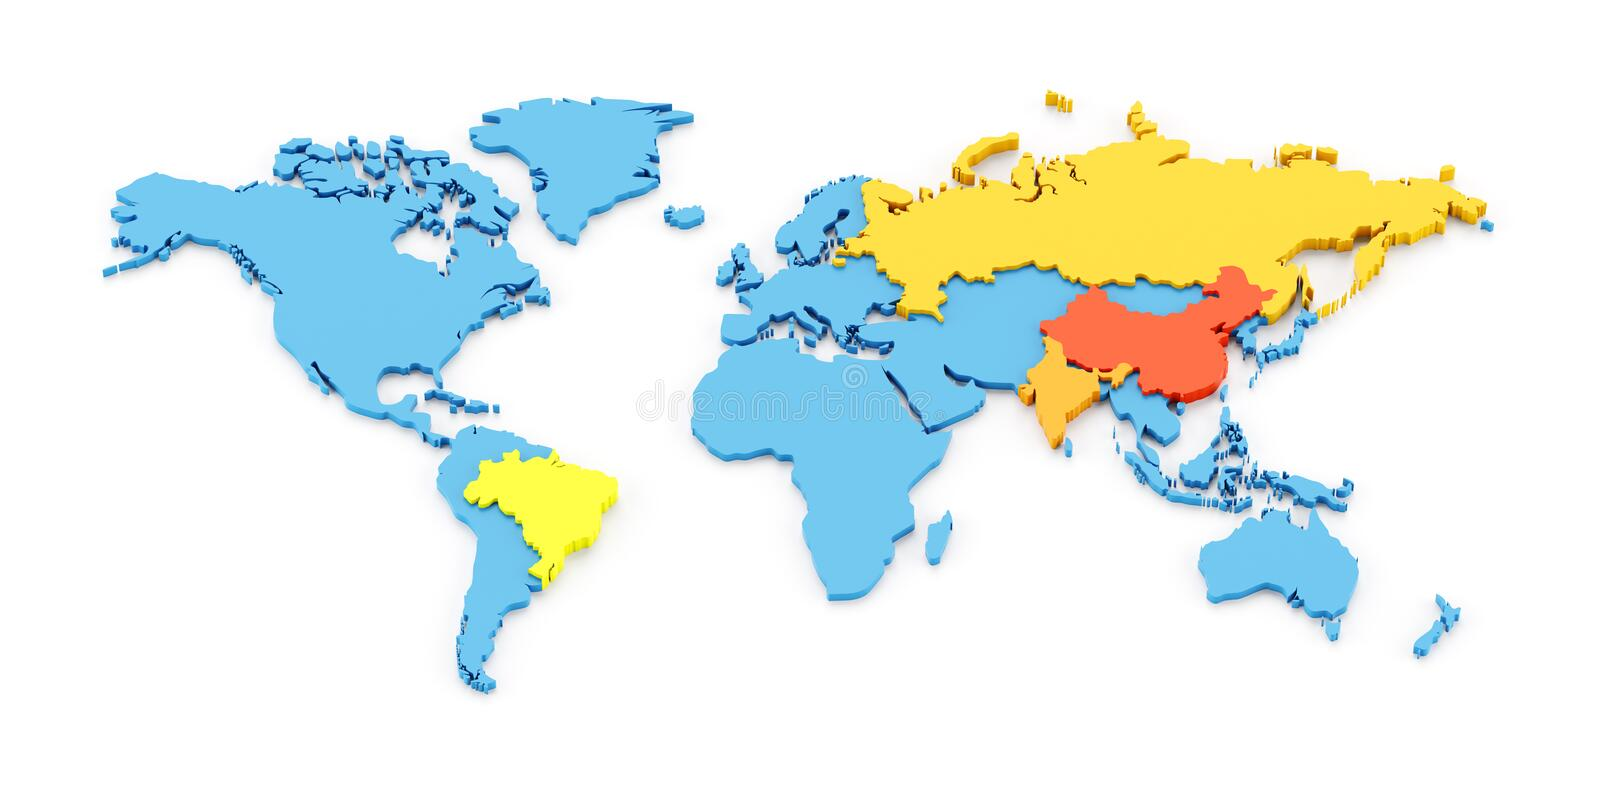 3d map of the fast growing developing economies of brazil russia india and china known as bric